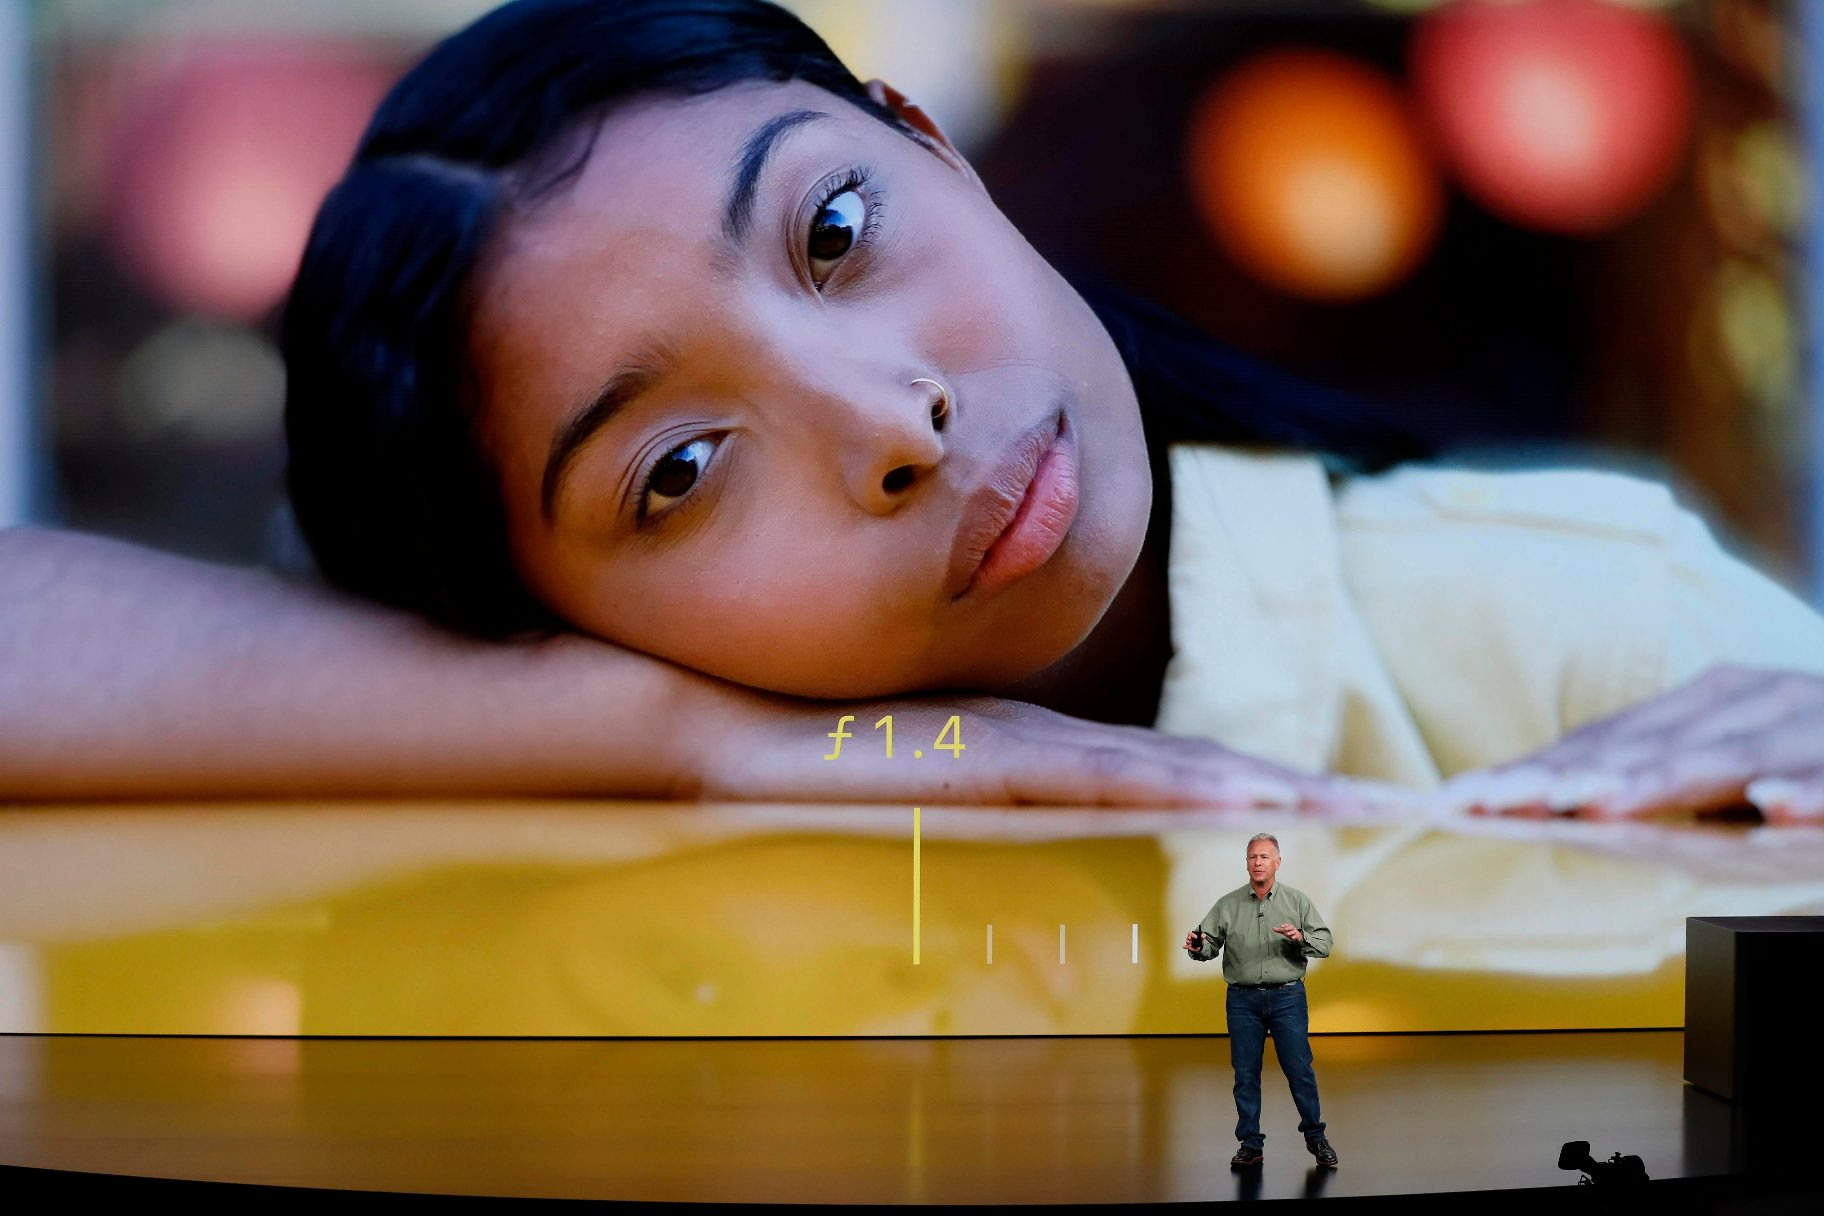 Philip W. Schiller, Senior Vice President, Worldwide Marketing of Apple, speaks about the the new Apple iPhone XS and XS Max at an Apple Inc product launch event at the Steve Jobs Theater in Cupertino, California, U.S., September 12, 2018. REUTERS/Stephen Lam